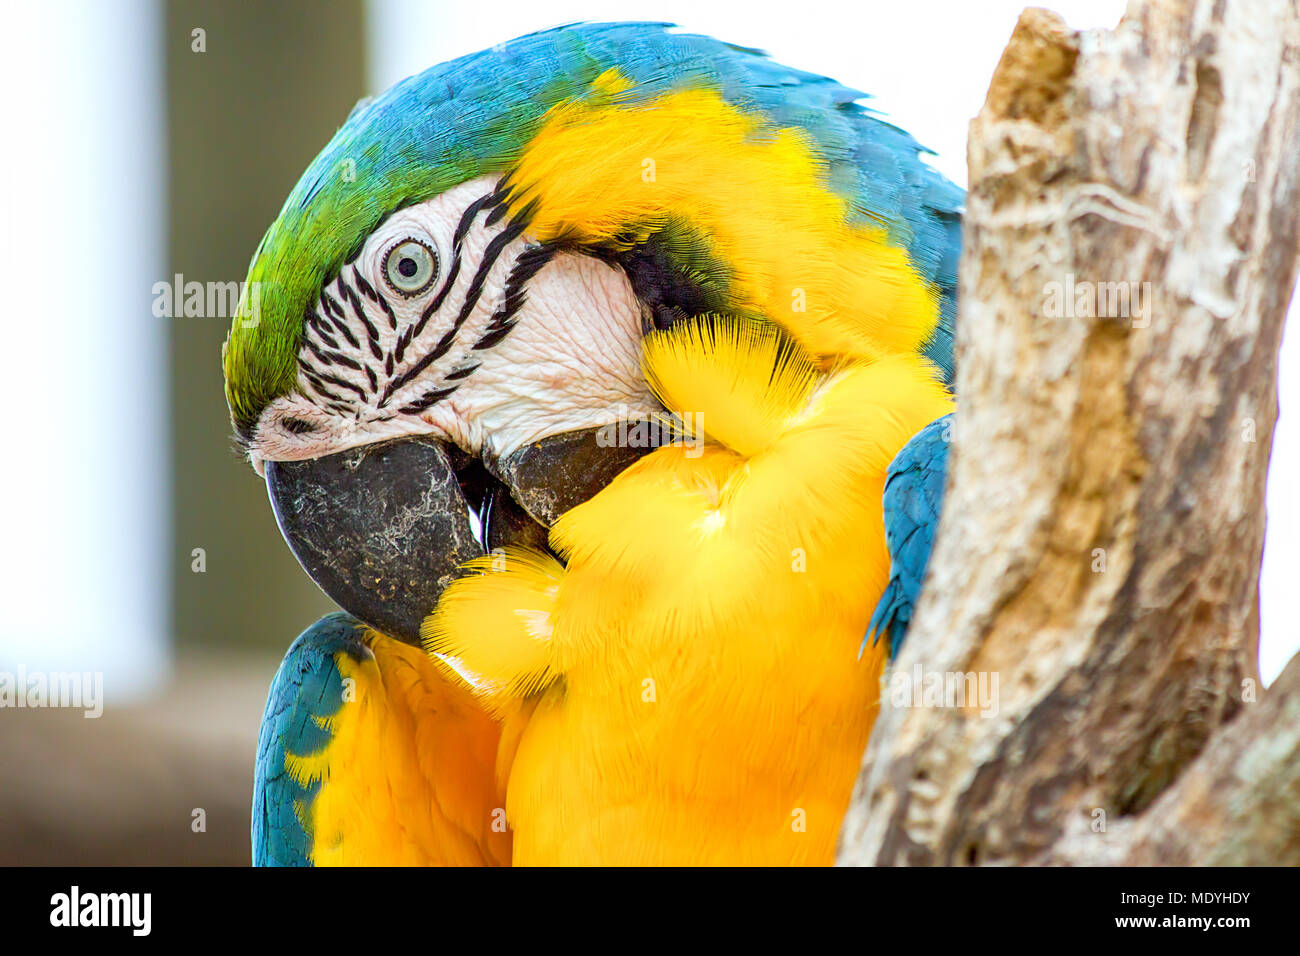 A yellow and blue macaw grooms his feathers. - Stock Image